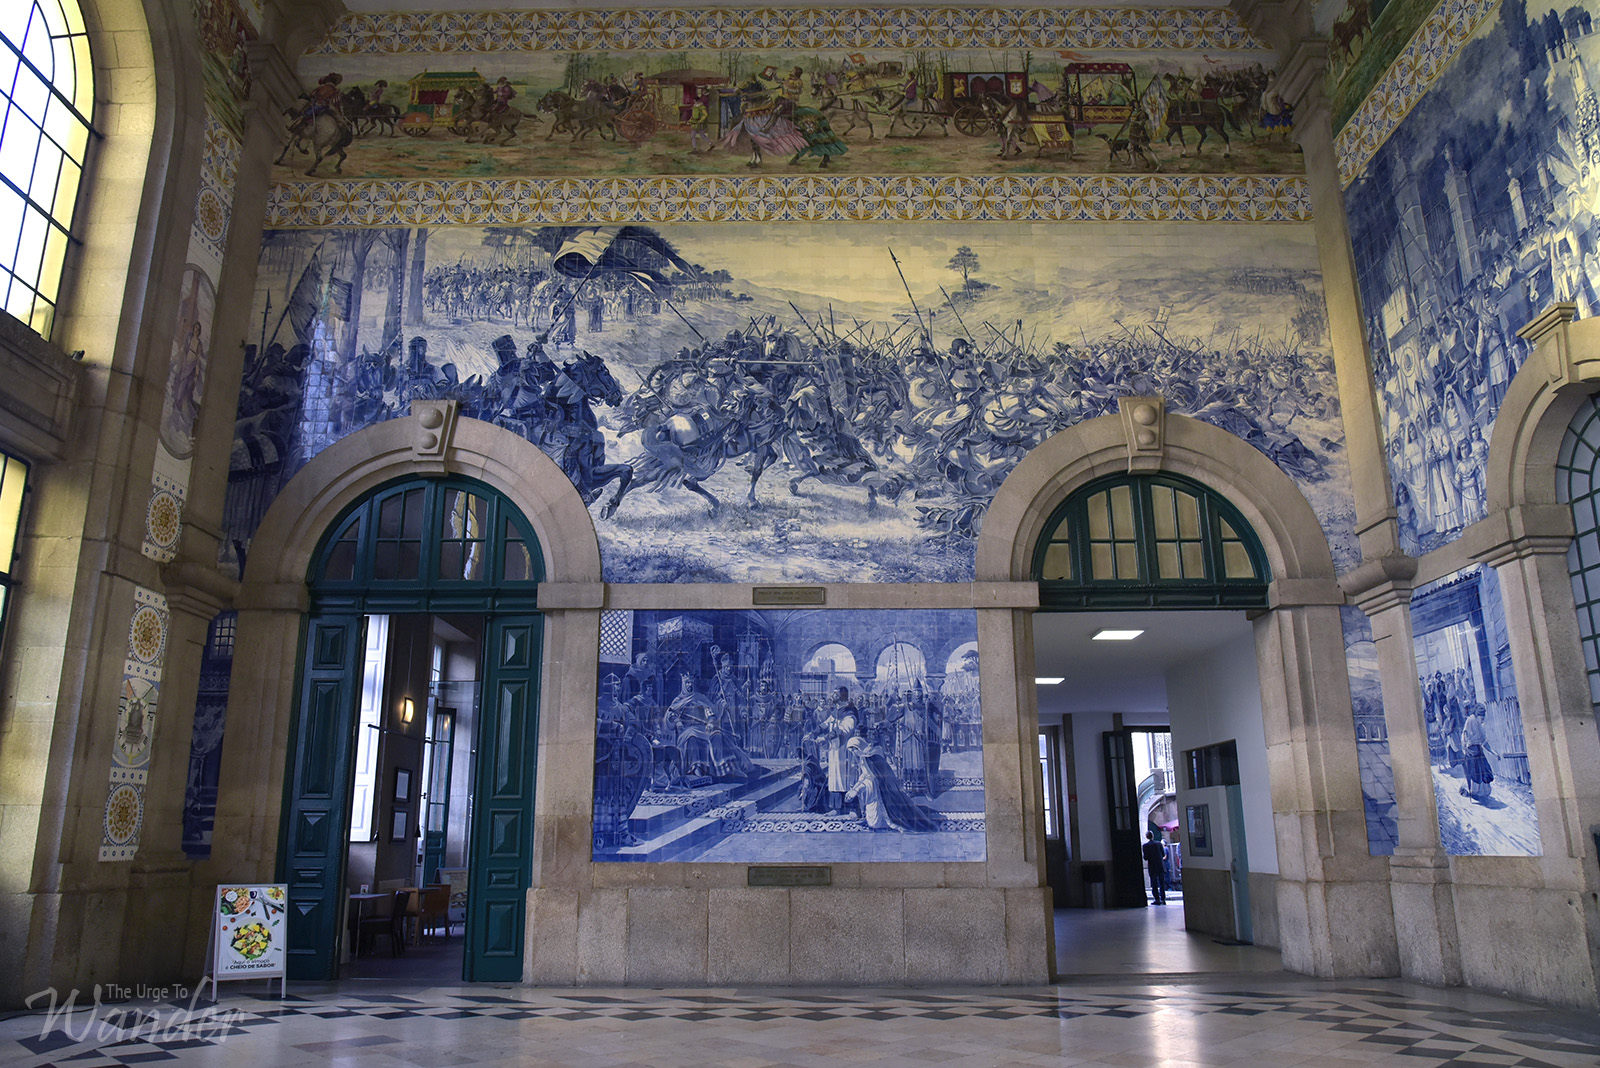 Azulejo Tiles in Sao Bento Station